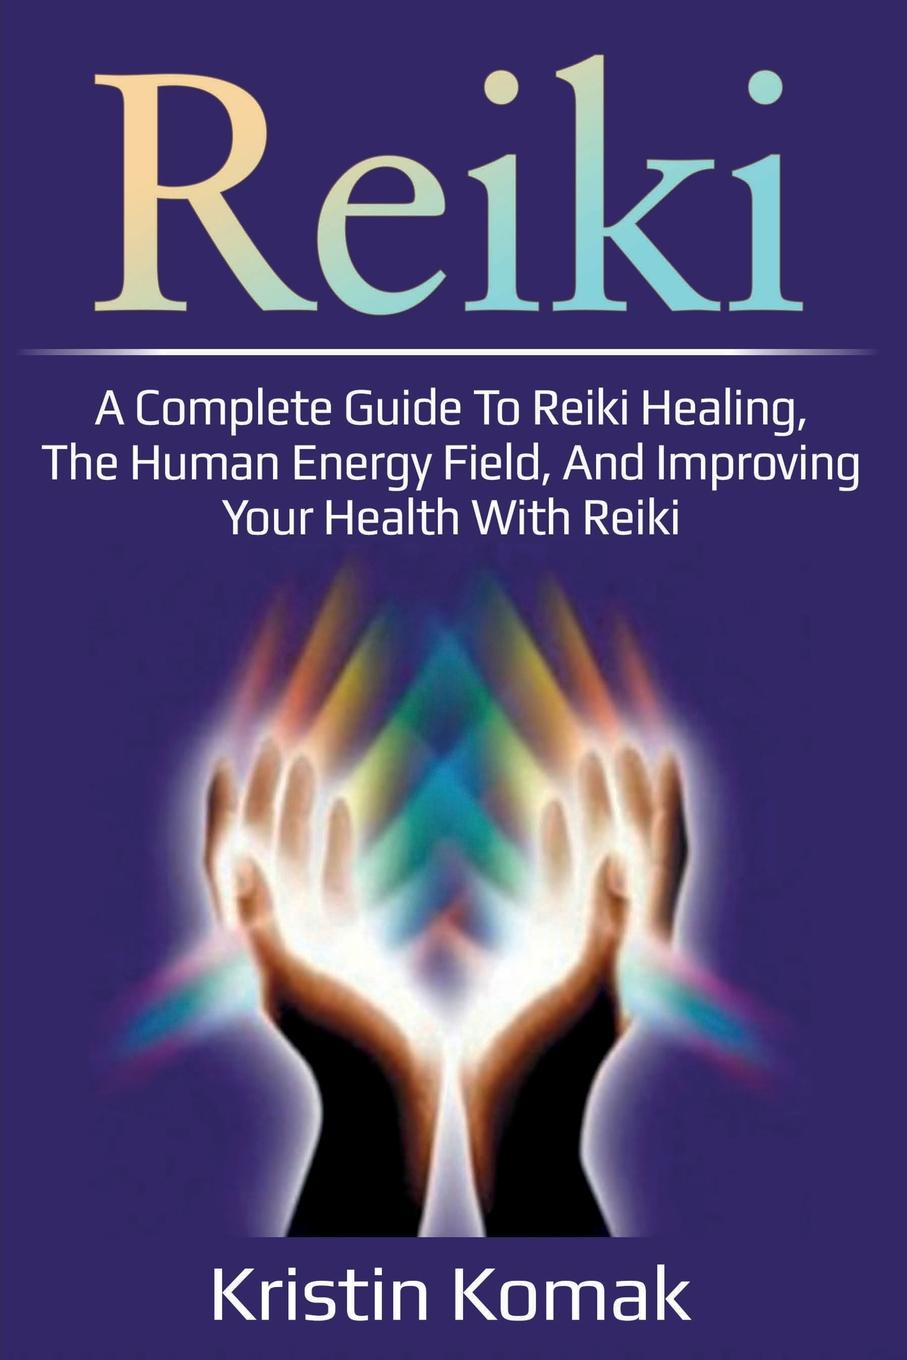 Фото - Kristin Komak Reiki. A complete guide to Reiki healing, the human energy field, and improving your health with Reiki kathleen prasad the animal reiki handbook finding your way with reiki in your local shelter sanctuary or rescue